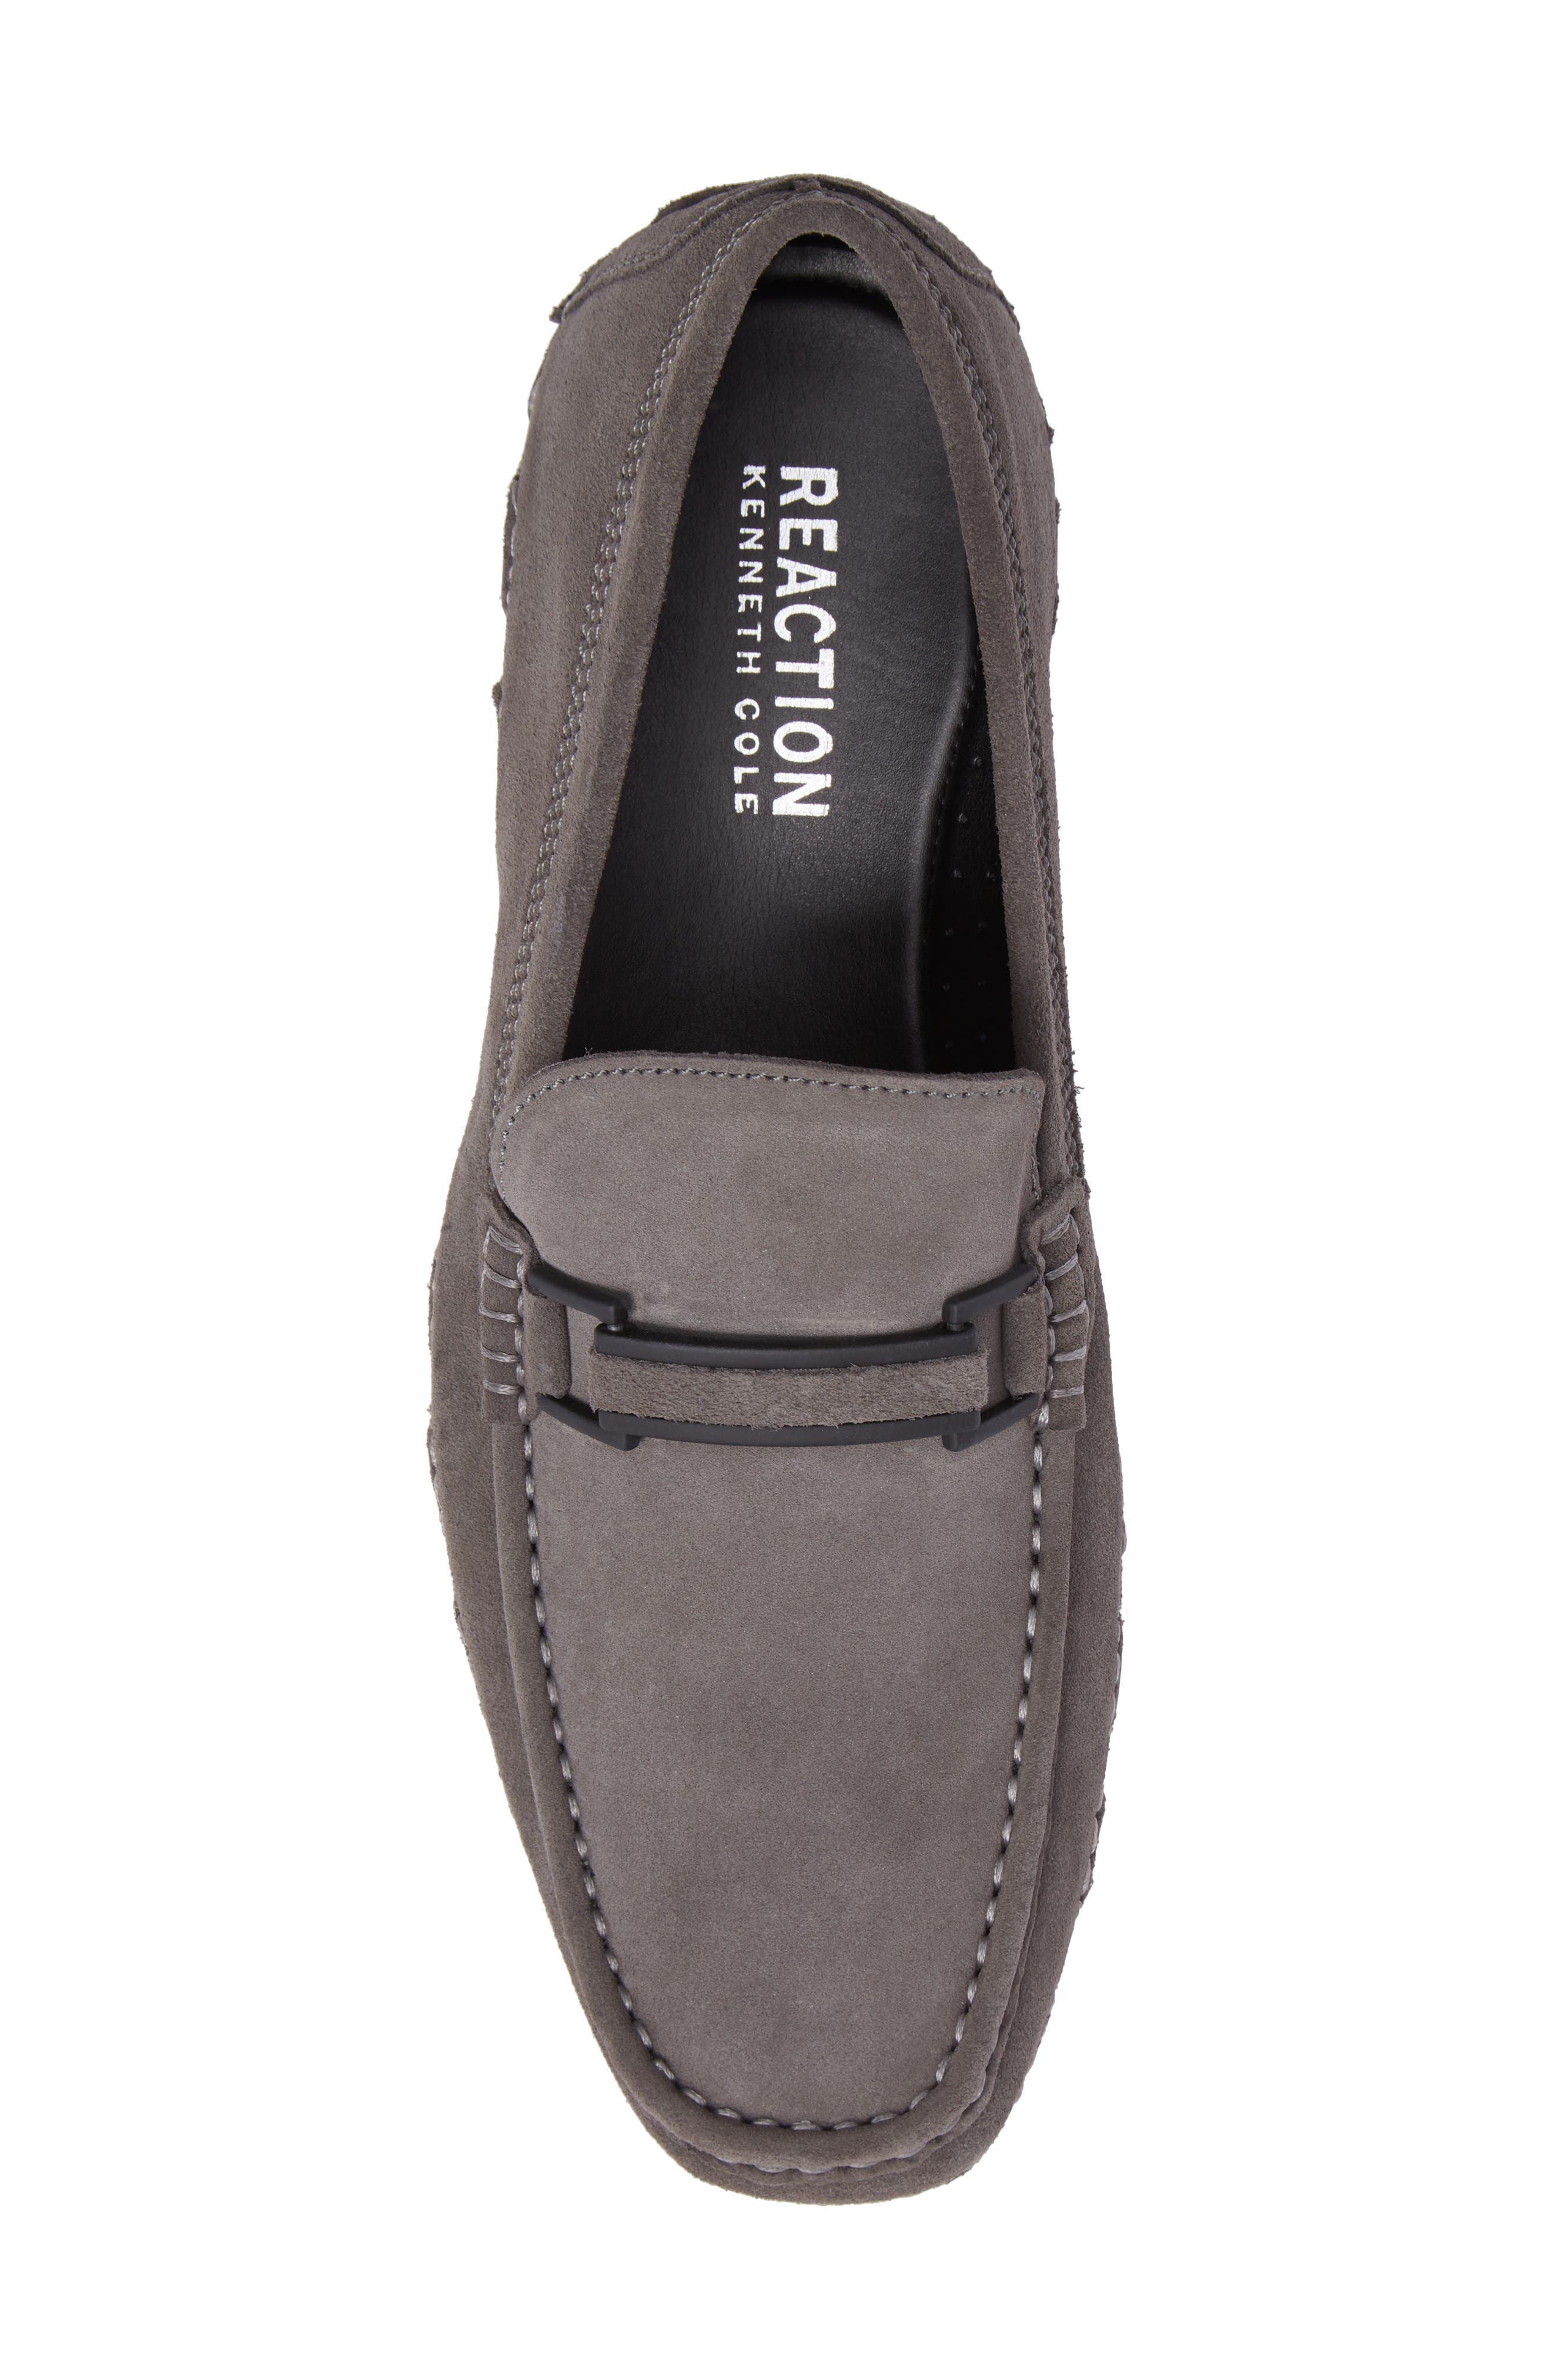 Kenneth Cole Reaction Driving Shoe,                             Alternate thumbnail 5, color,                             020